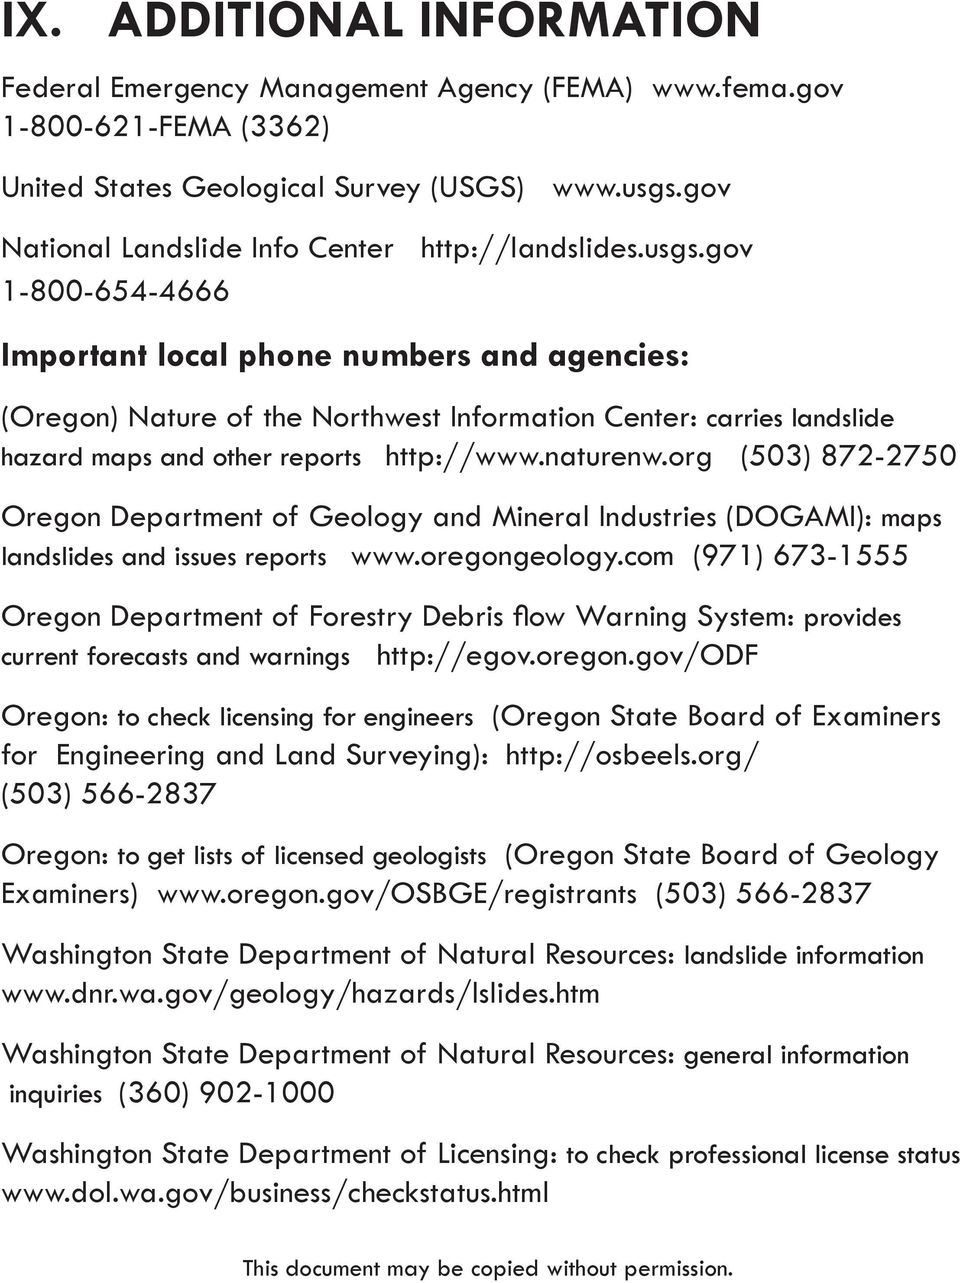 gov 1-800-654-4666 Important local phone numbers and agencies: (Oregon) Nature of the Northwest Information Center: carries landslide hazard maps and other reports http://www.naturenw.